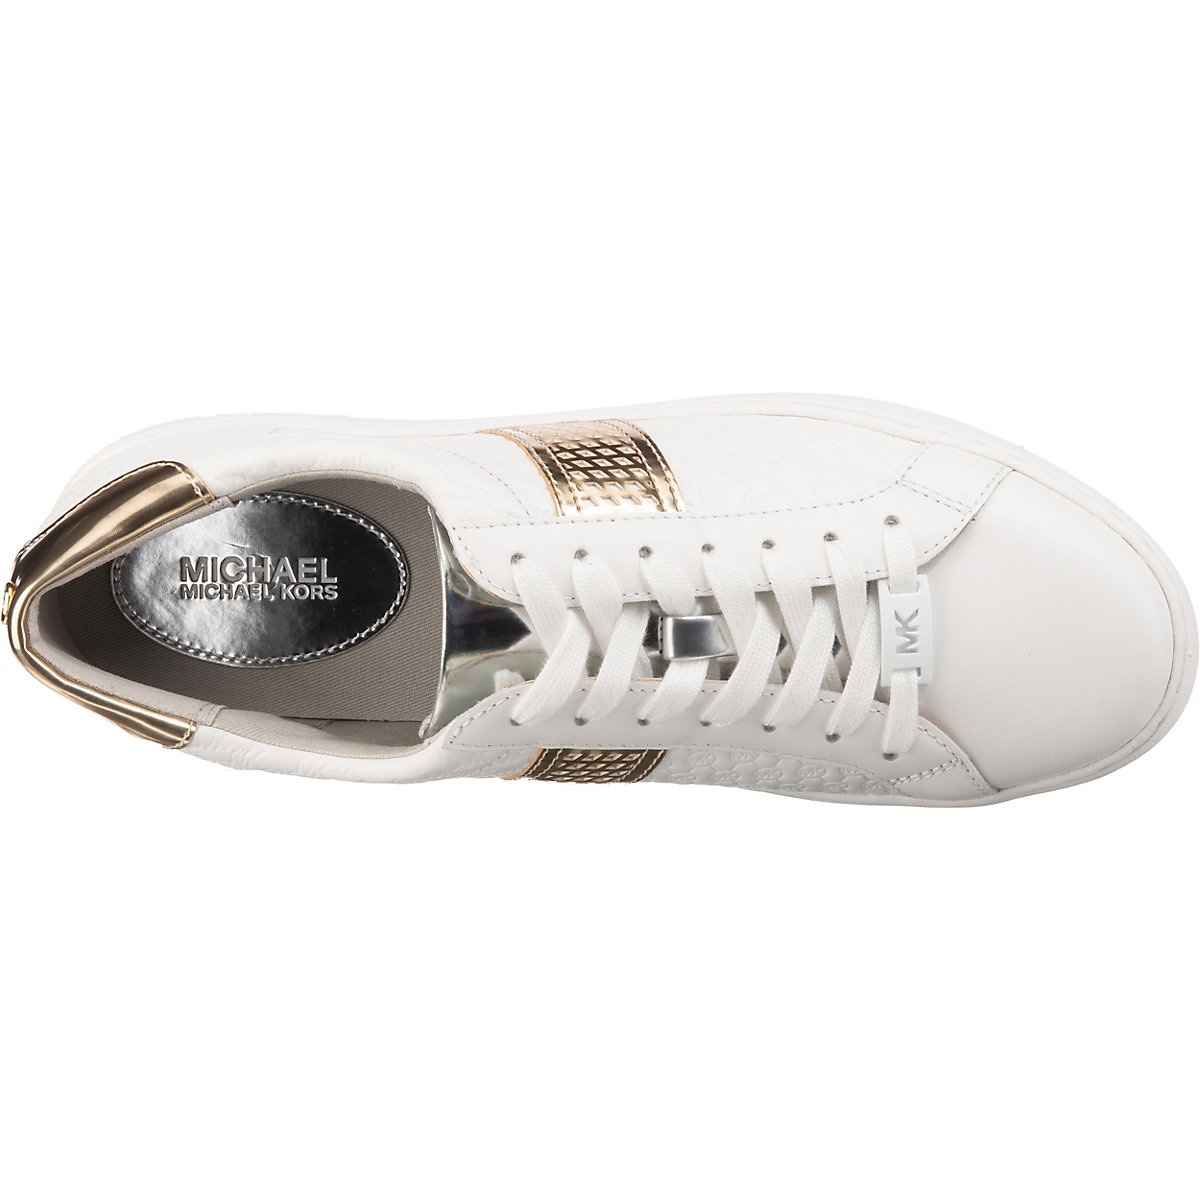 MICHAEL KORS, Irving Stripe Lace Up Sneakers Low, weiß ...